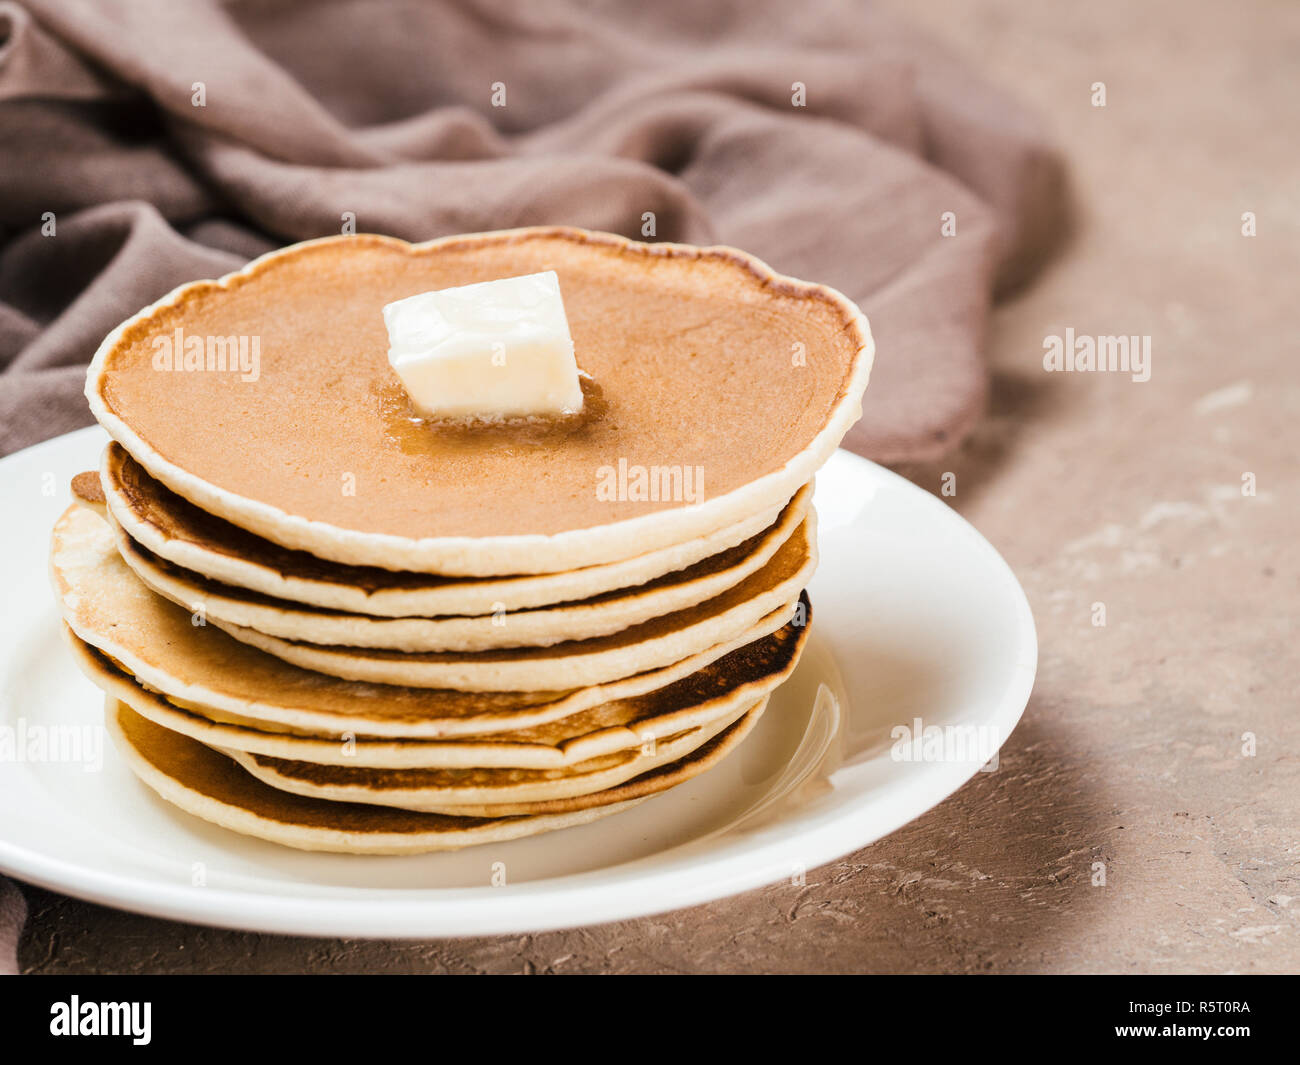 stack of homemade pancakes - Stock Image